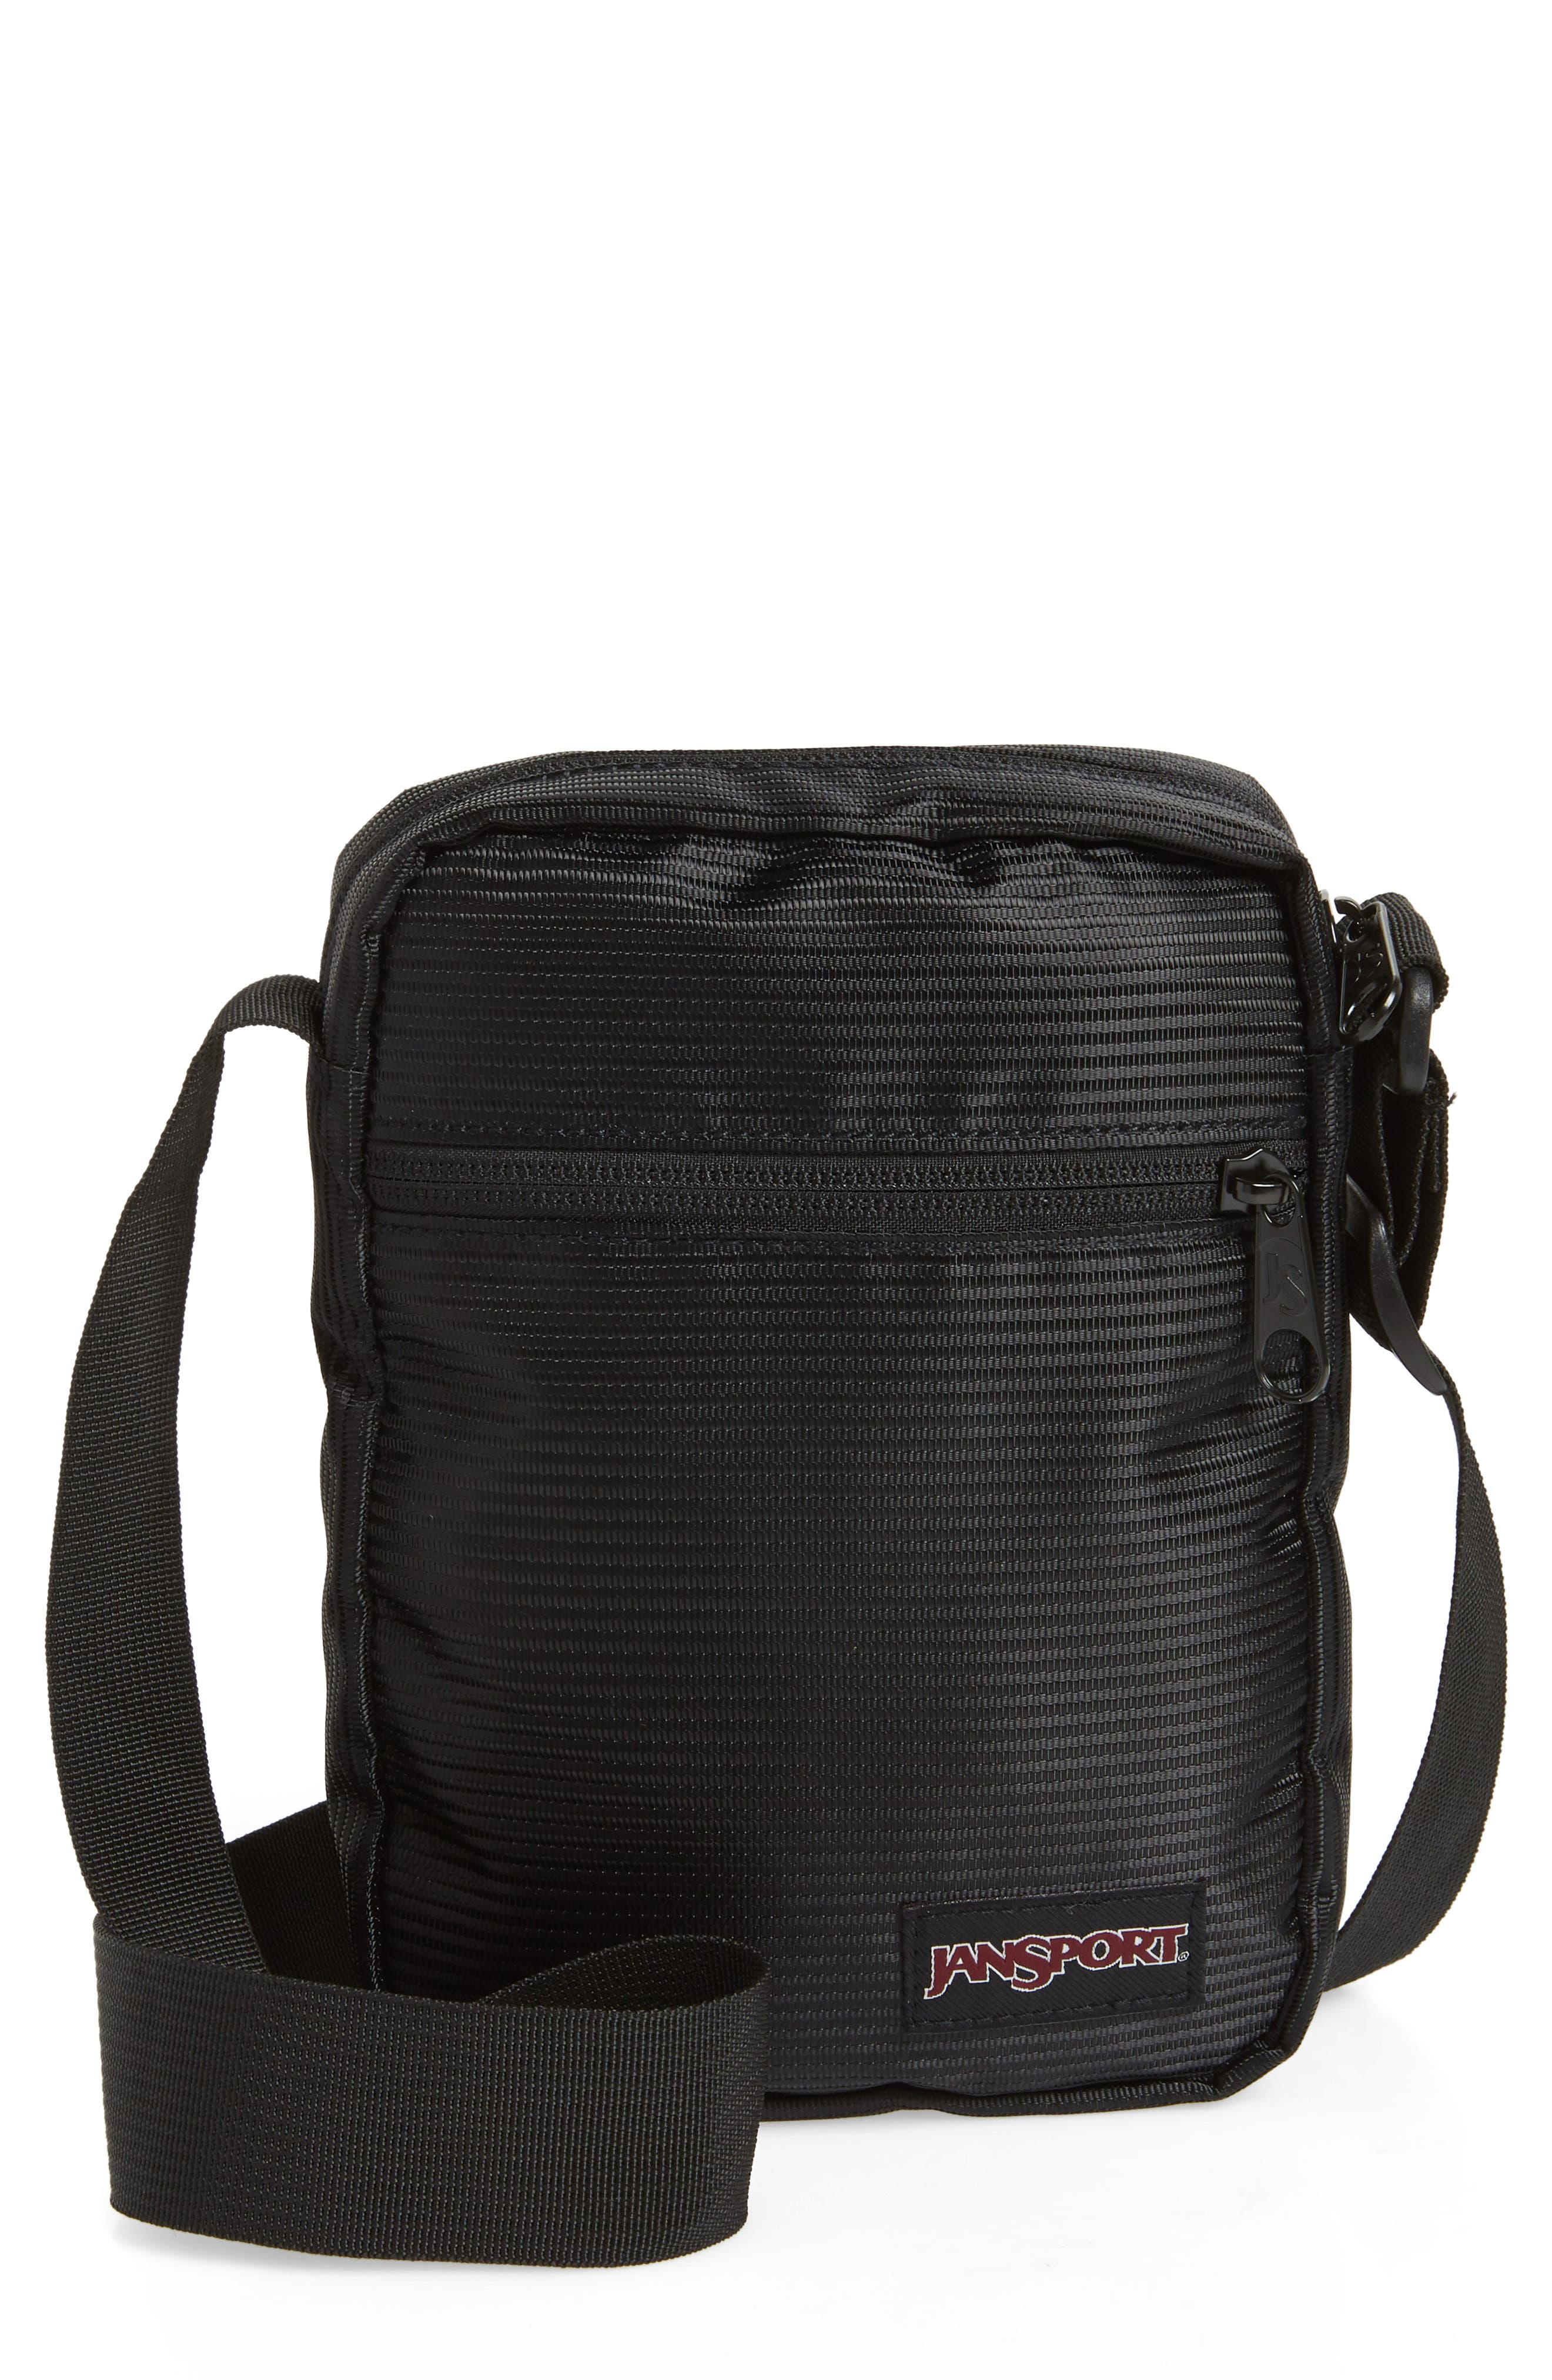 Crossbody FX Bag,                         Main,                         color, BLACK LINE CORD